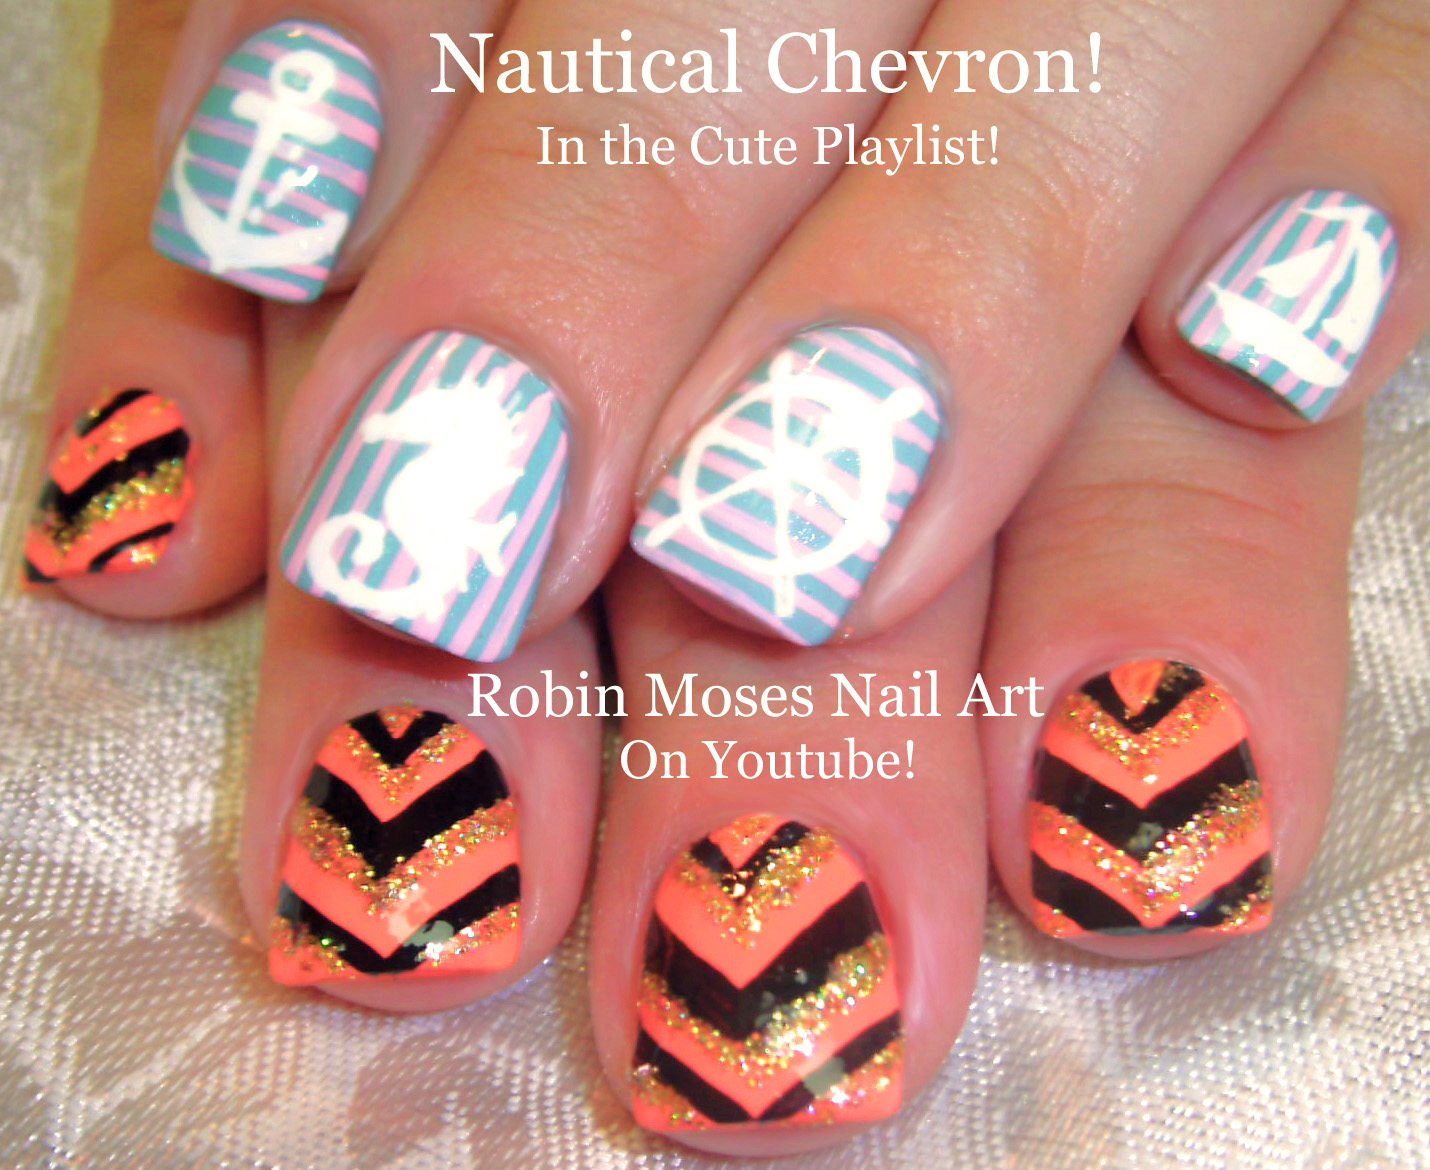 Excellent Claire Nail Polish Big Where To Buy Dog Nail Polish Flat Cheap Wholesale Nail Polish Opi Mint Green Nail Polish Young How Do Nail Art BluePictures Of Nail Art Robin Moses Nail Art: Nautical Nails And Sparkley Summer Chevron ..